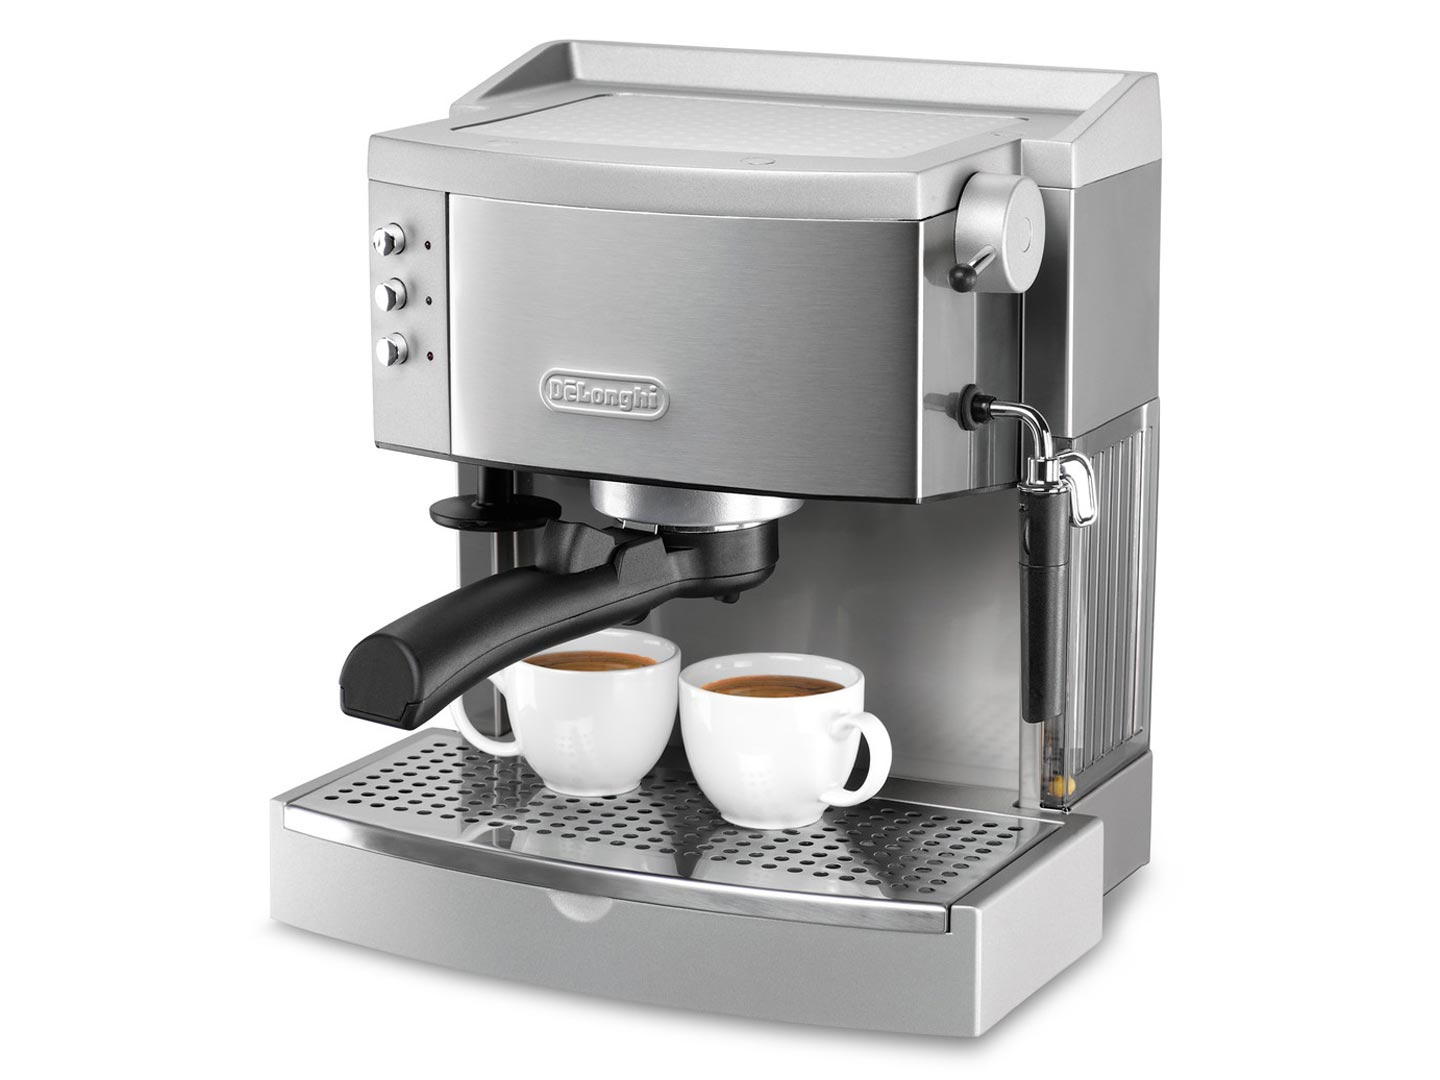 DeLonghi EC702 15-Bar-Pump Espresso Maker Review TechLogitic